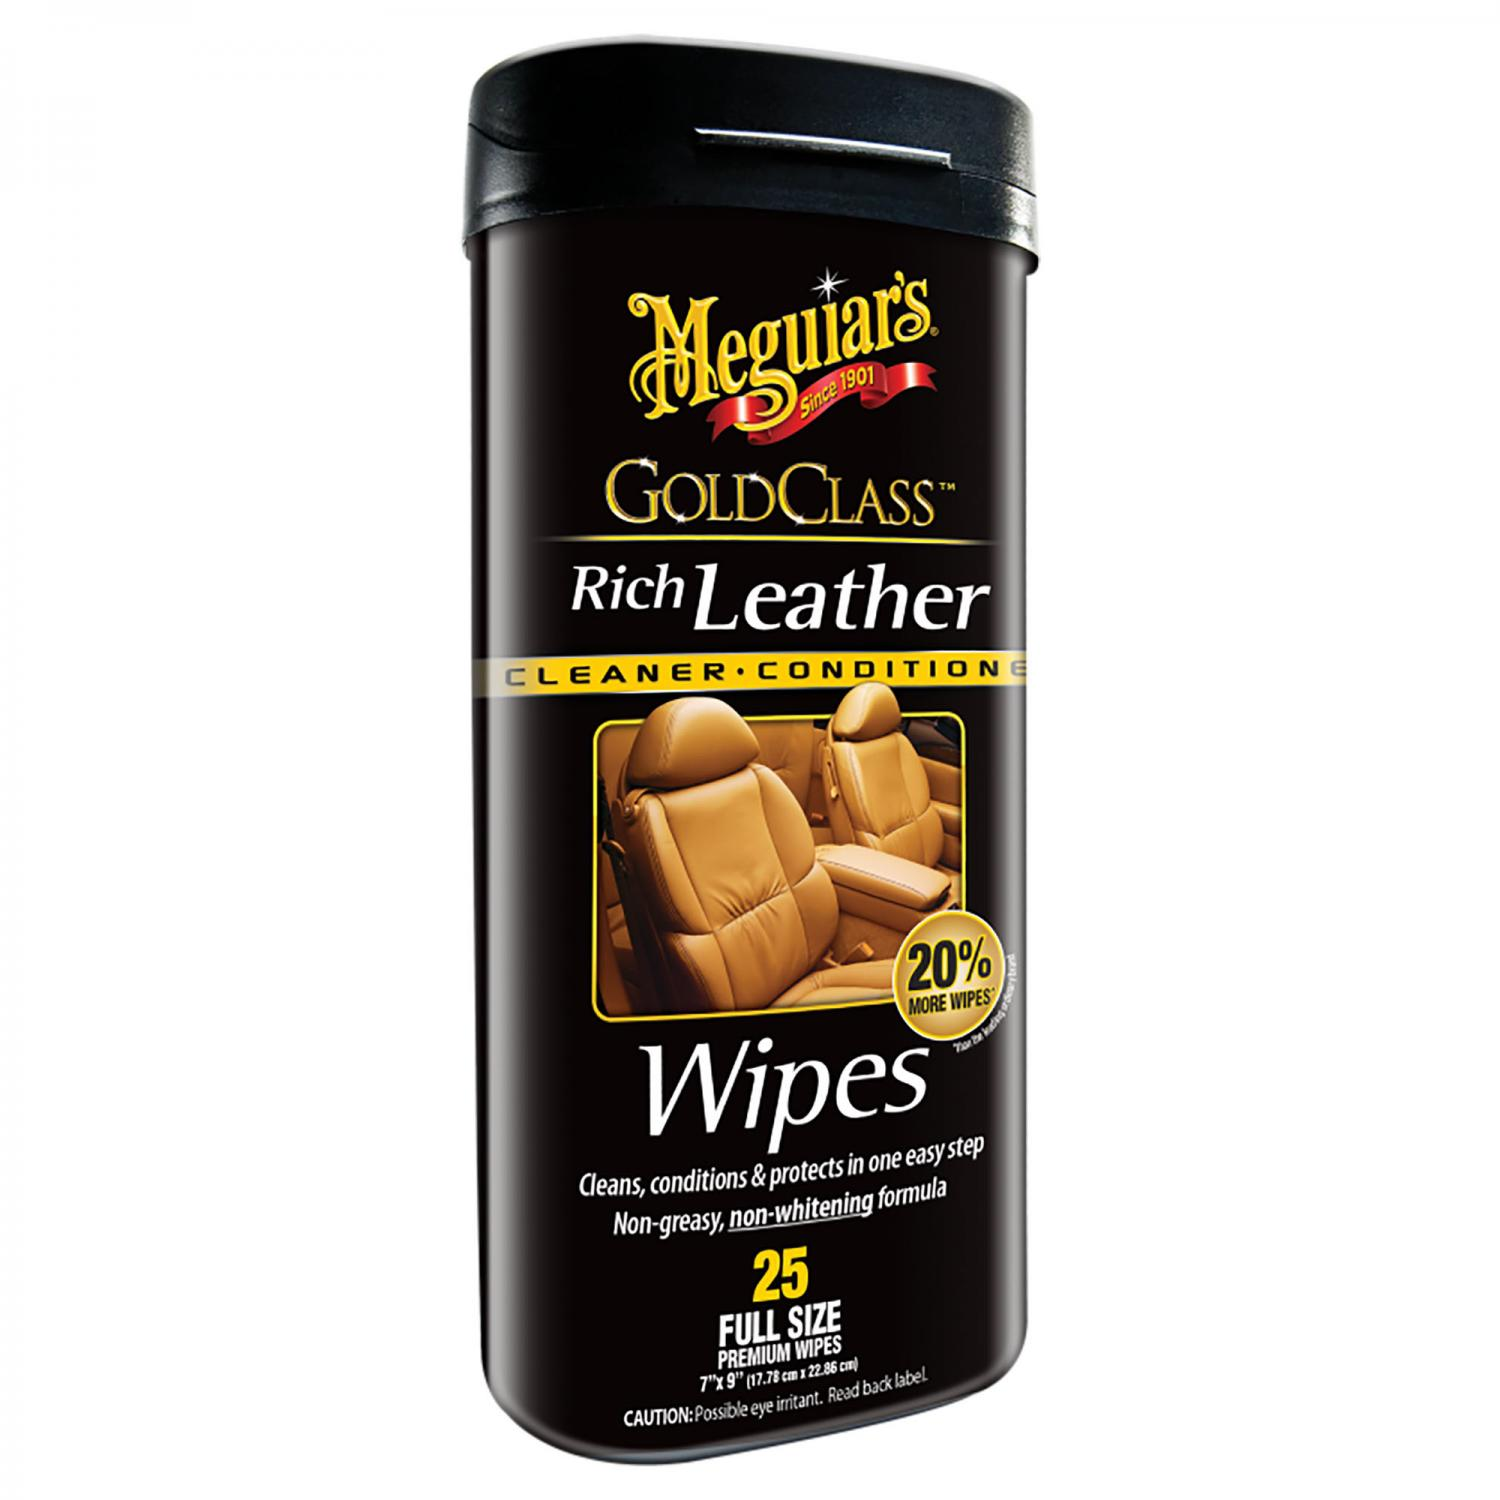 Gold Class Rich Leather Wipes   Meguiars